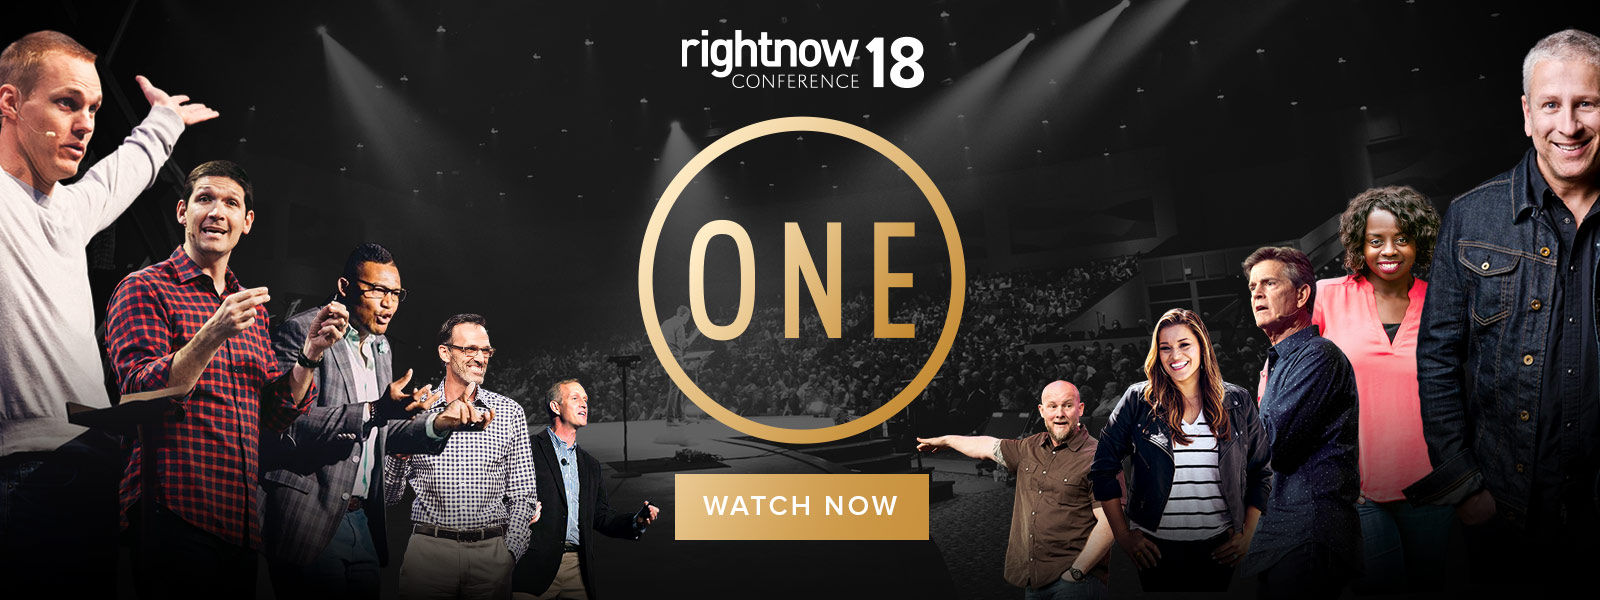 RightNow Conference 2018